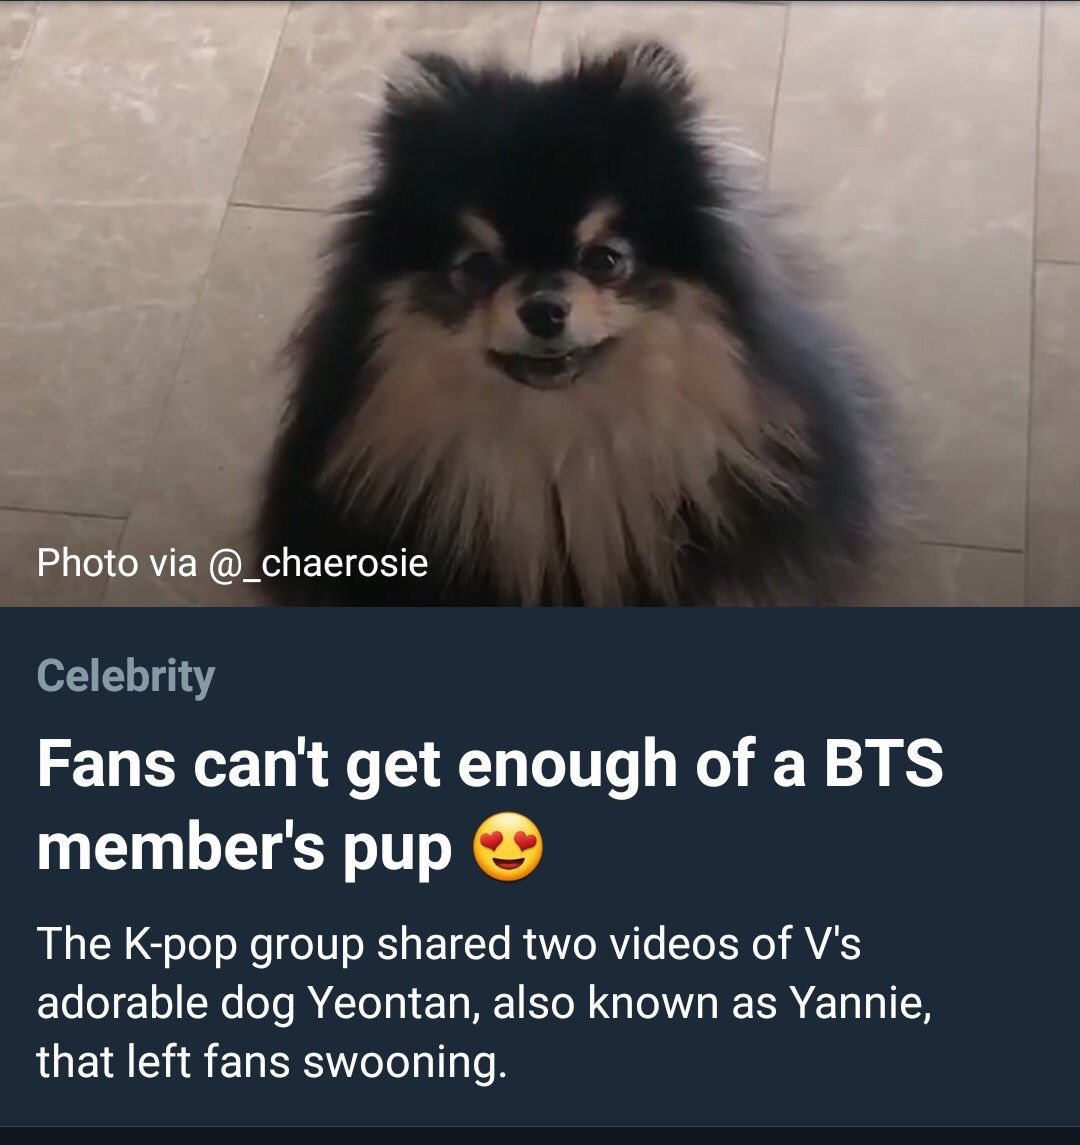 SLOW] kim yeontan •̀ㅅ•́ on Twitter: